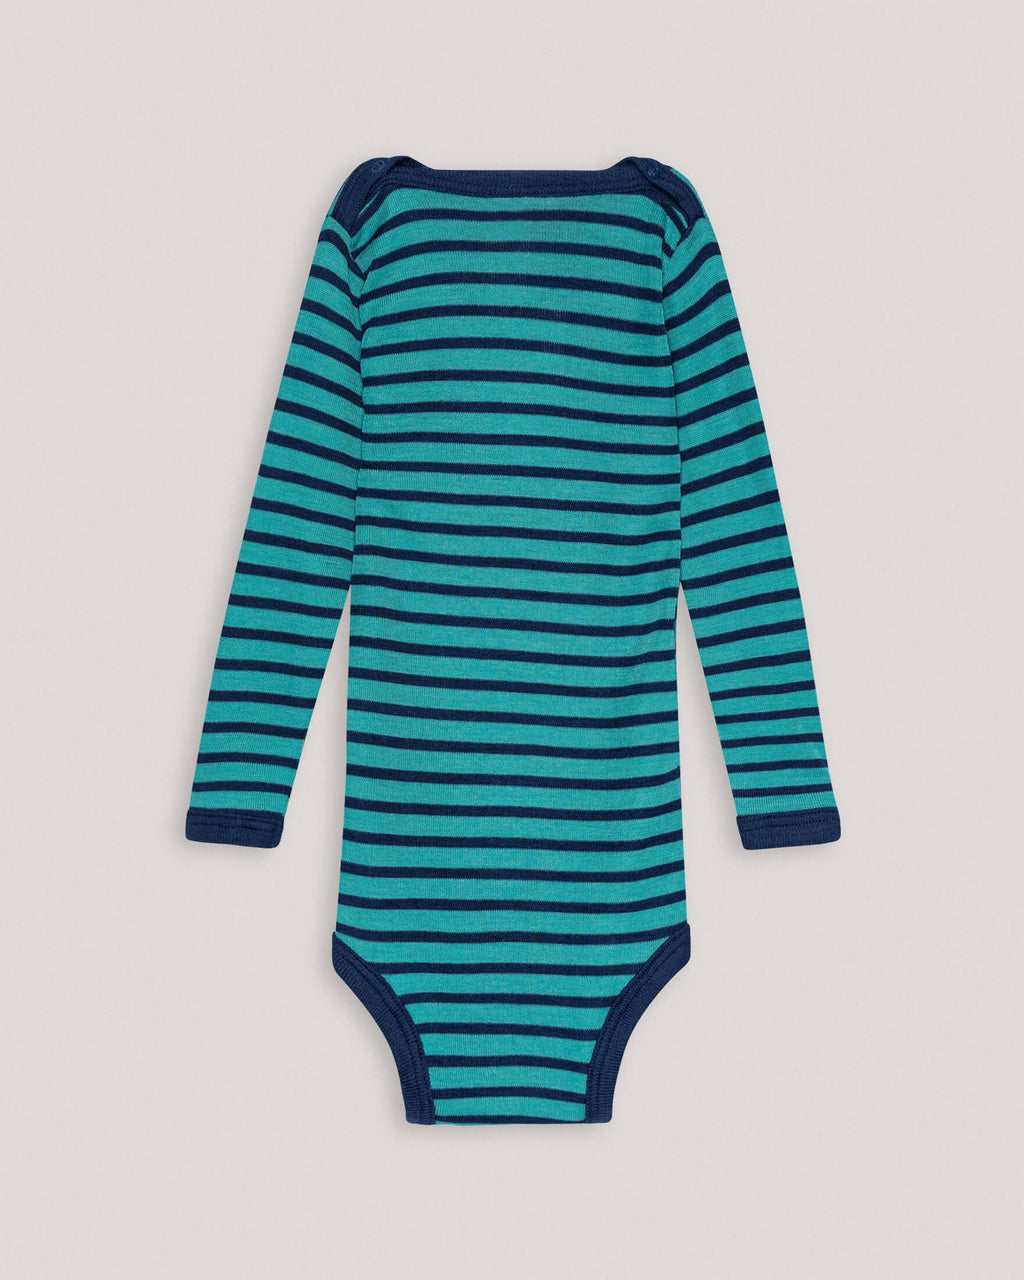 variant_2 | EN Blue Baby Body Stripes | DE Blau Baby Body Streifen